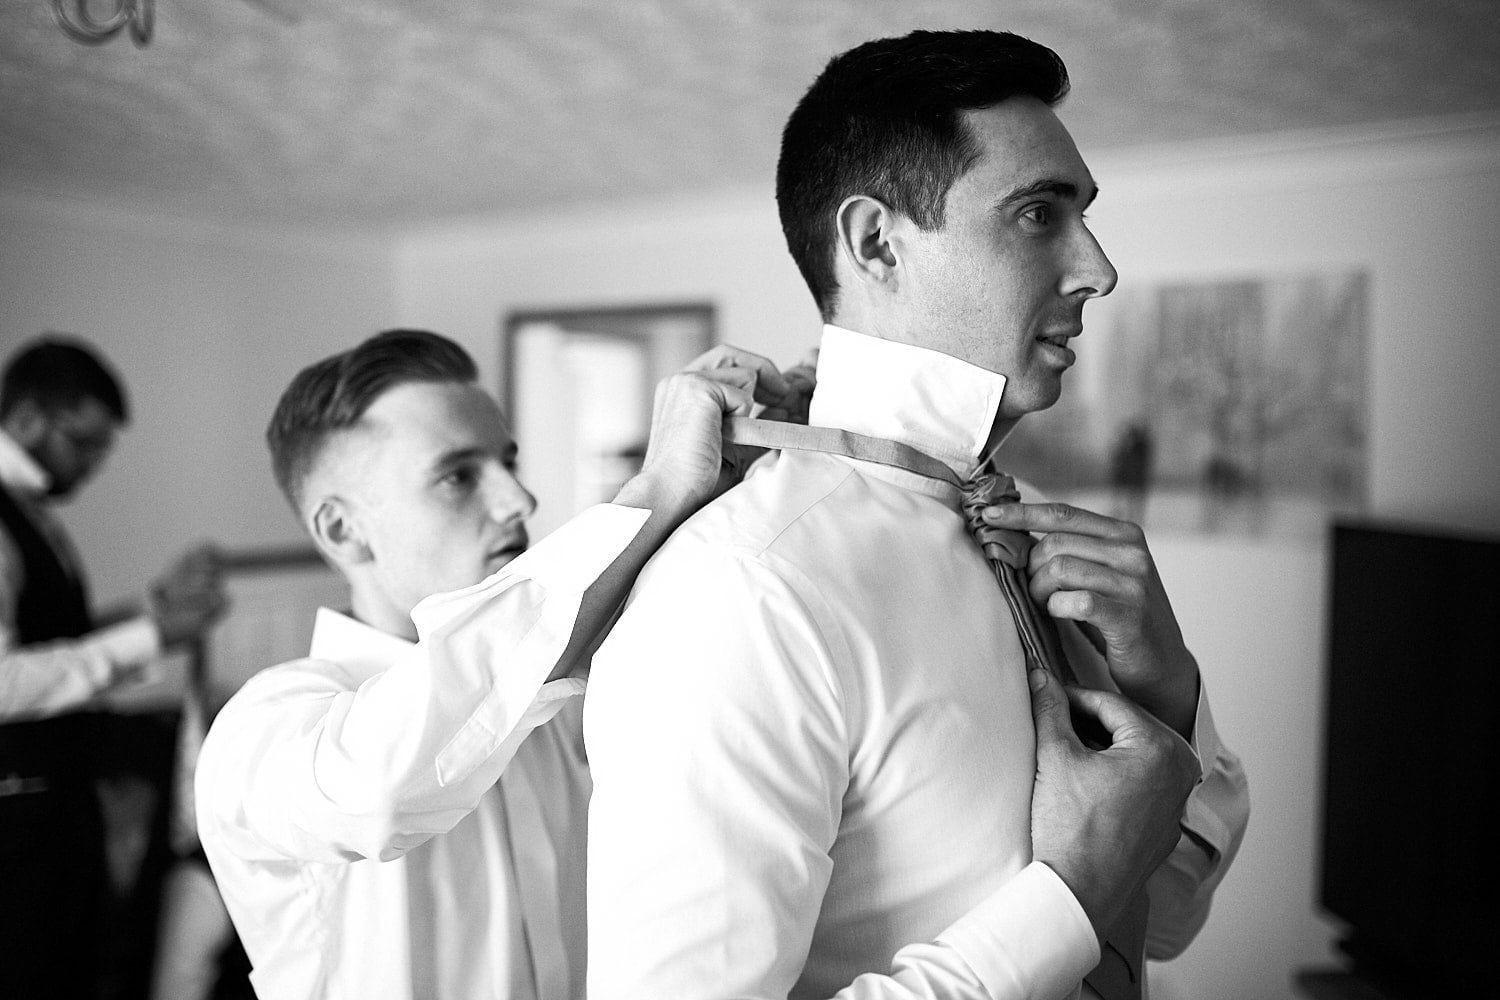 The best man helps the groom prepare his tie on the morning of his wedding